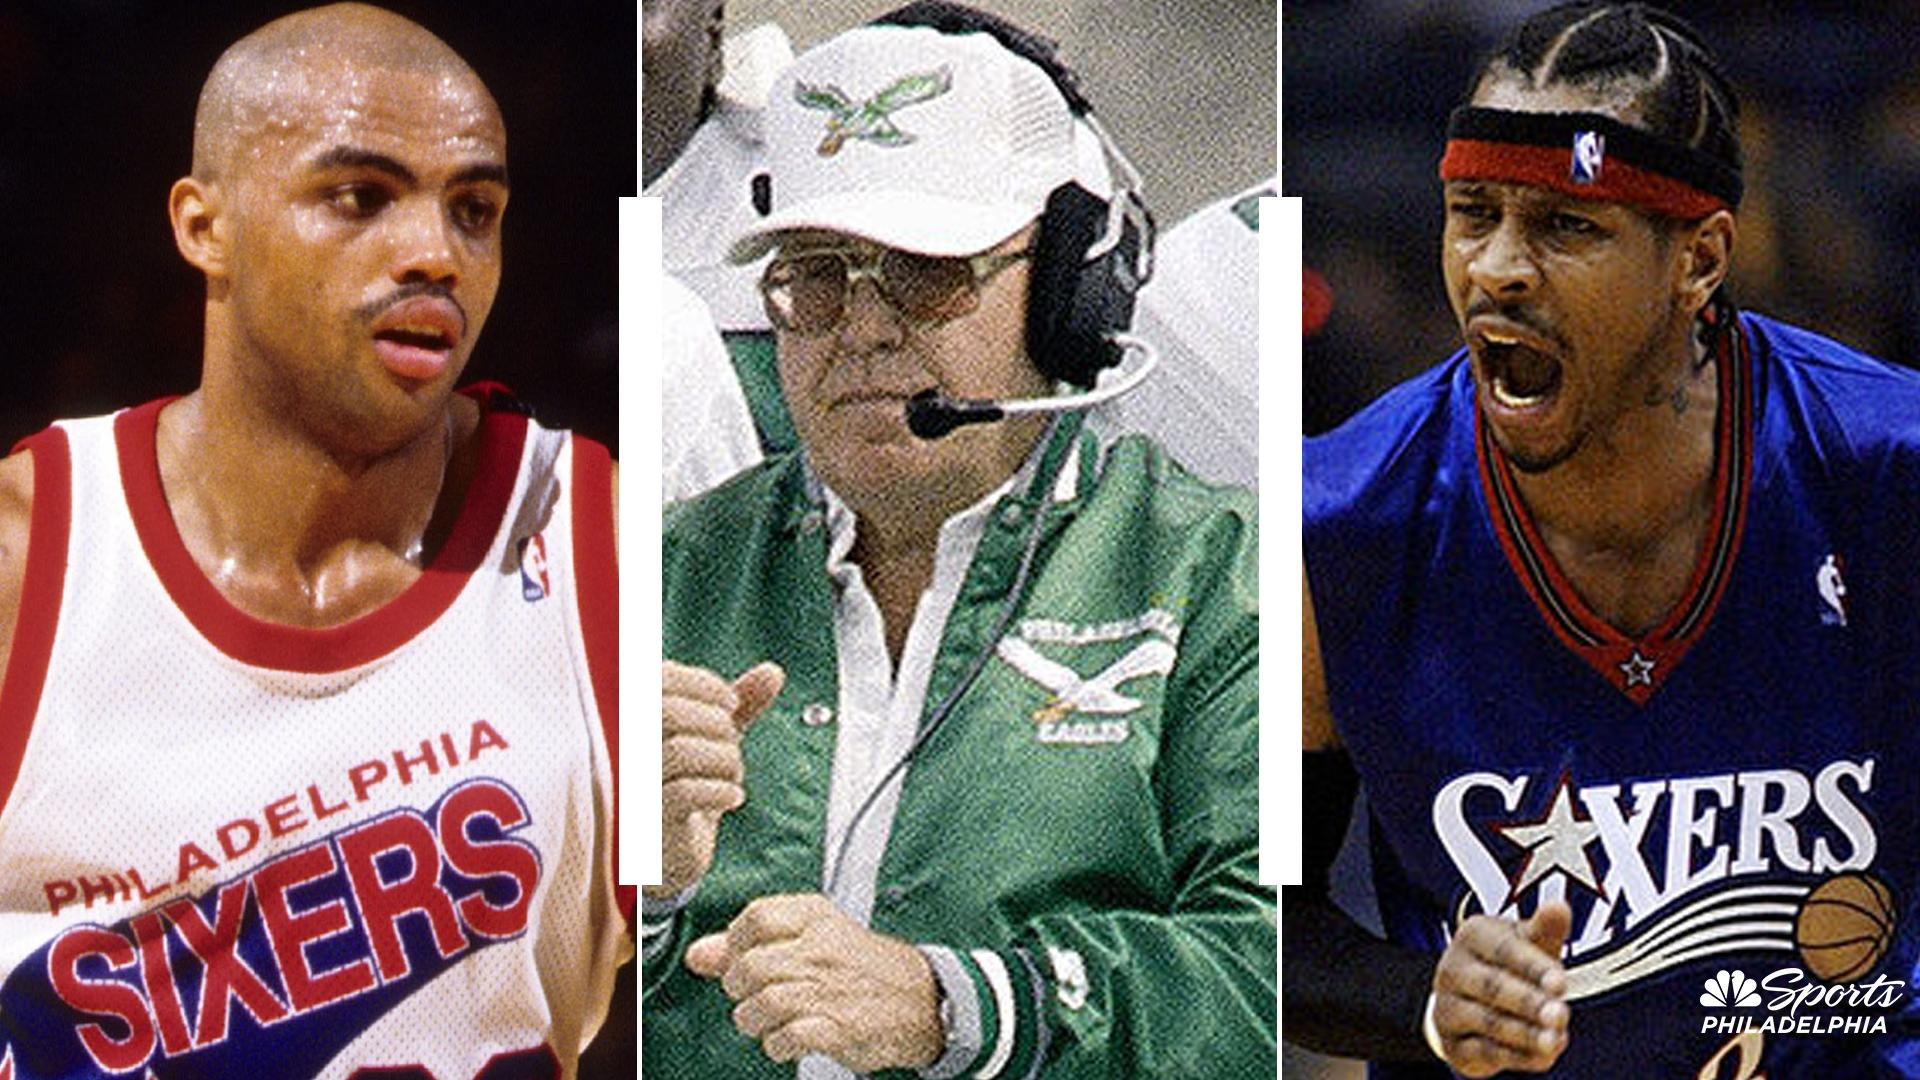 The 10 most quotable Philly sports figures